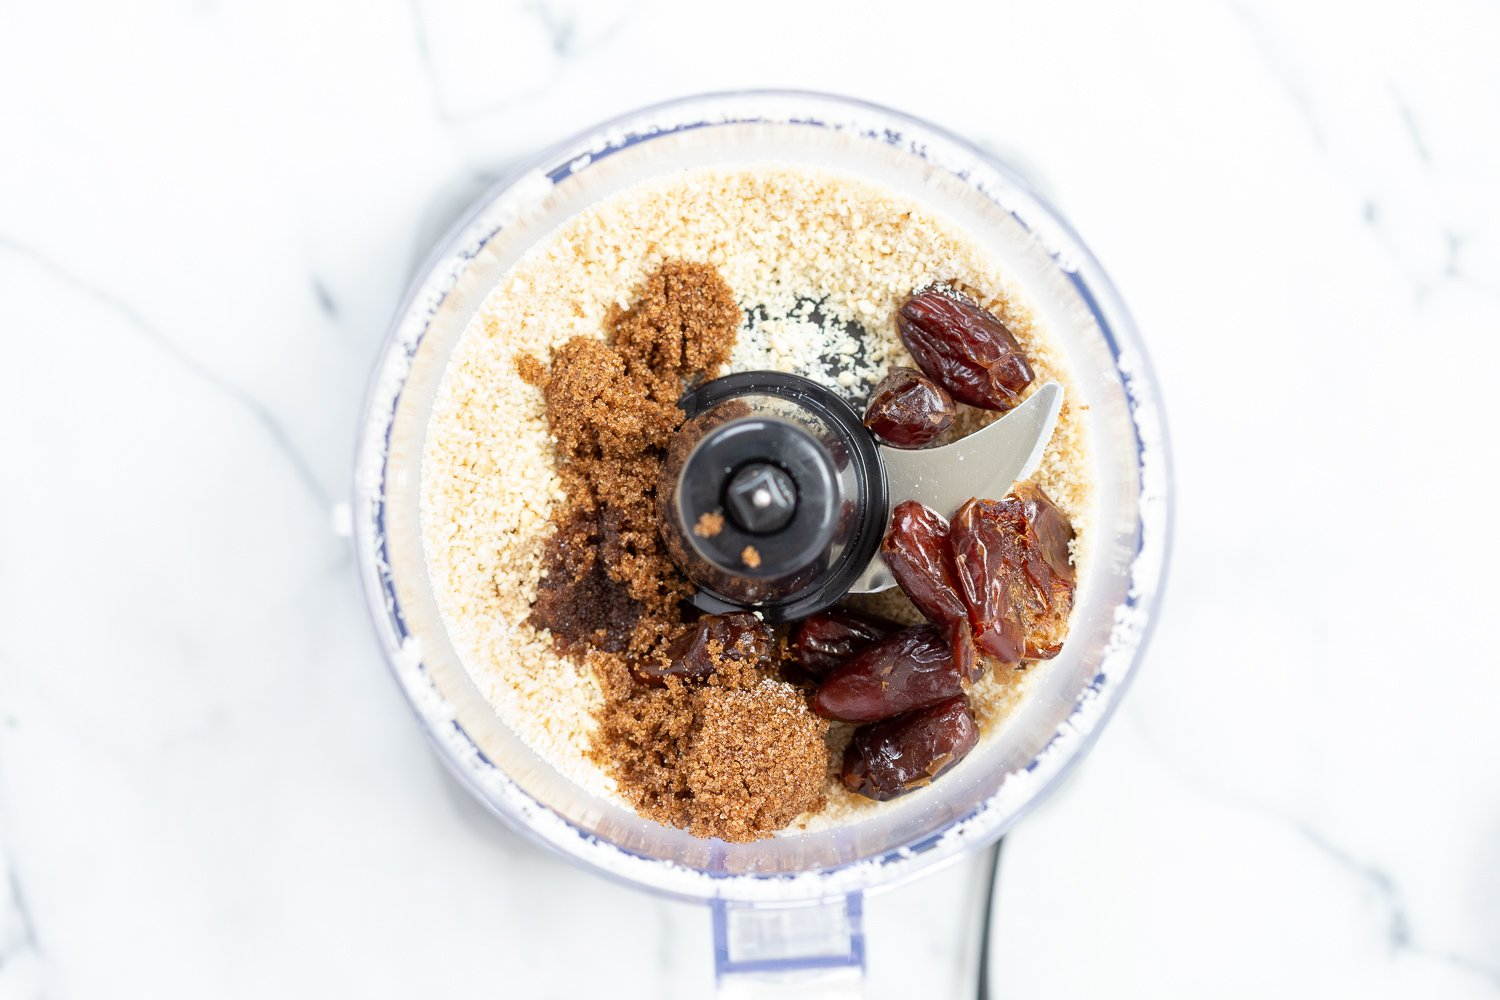 Ingredients for our Vegan Cookie Dough Bites in a food processor